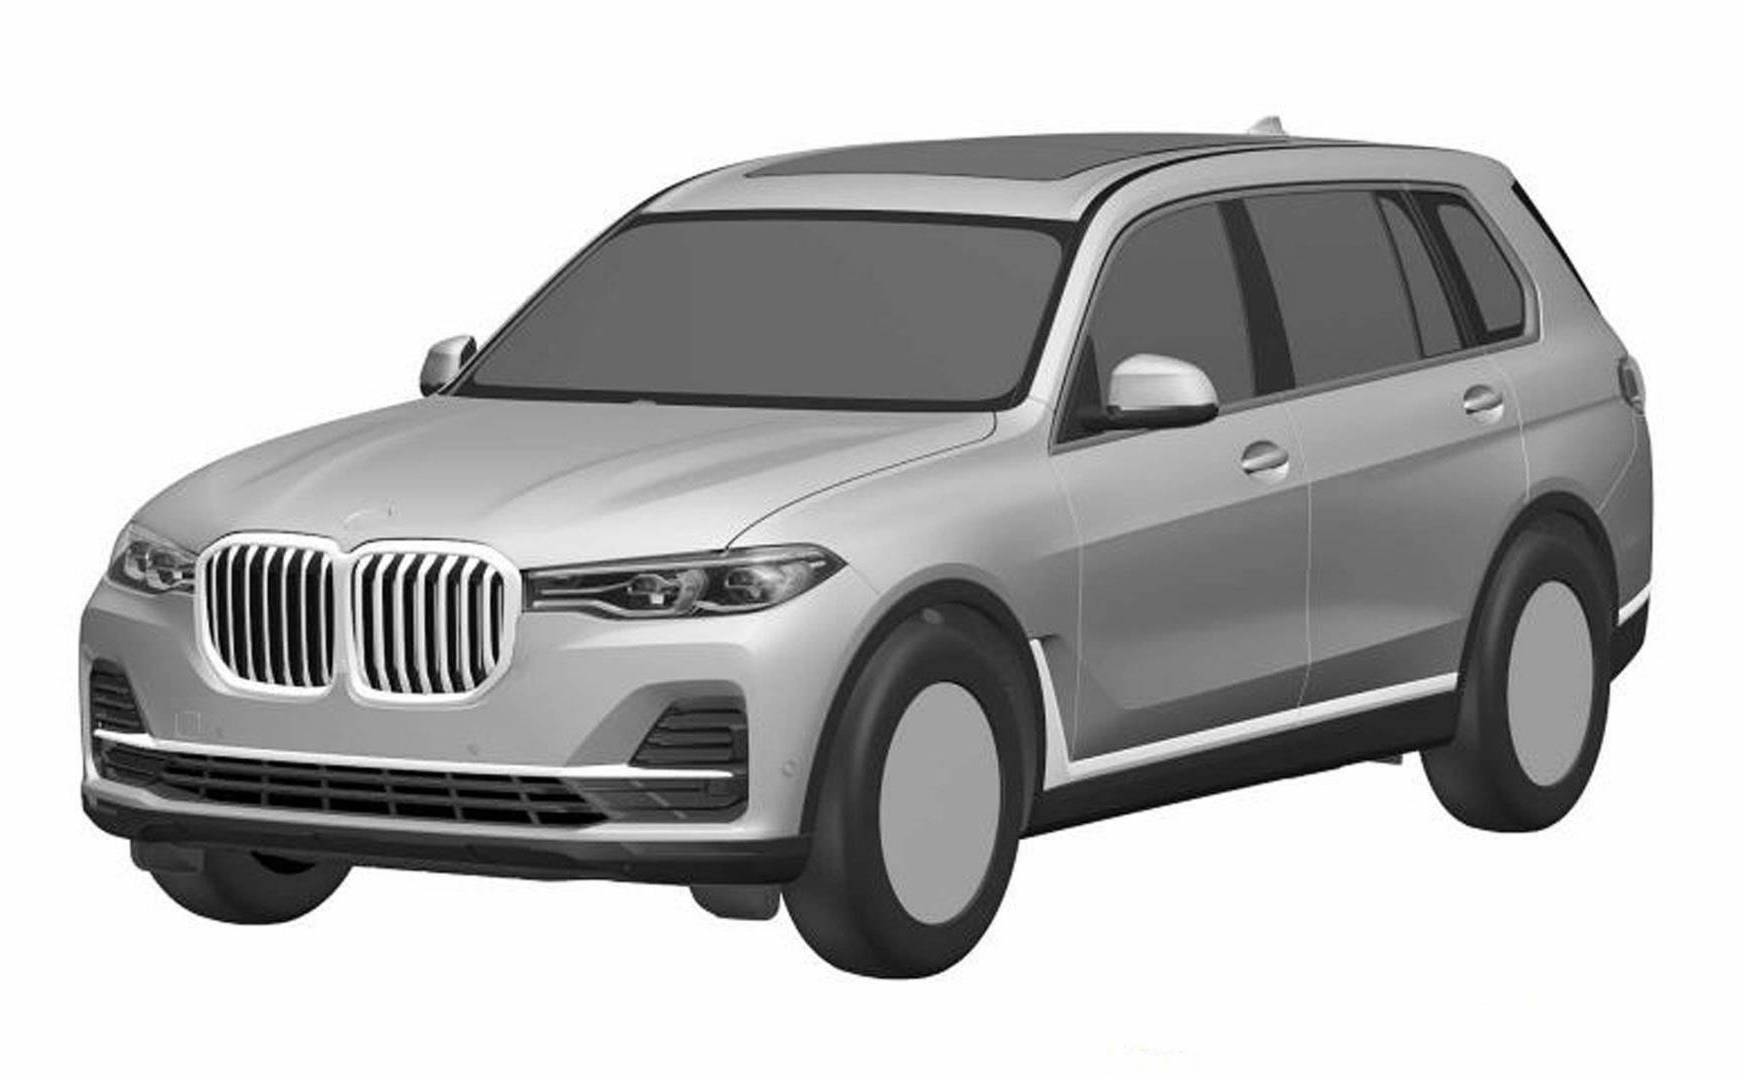 hight resolution of bmw x7 patent image front